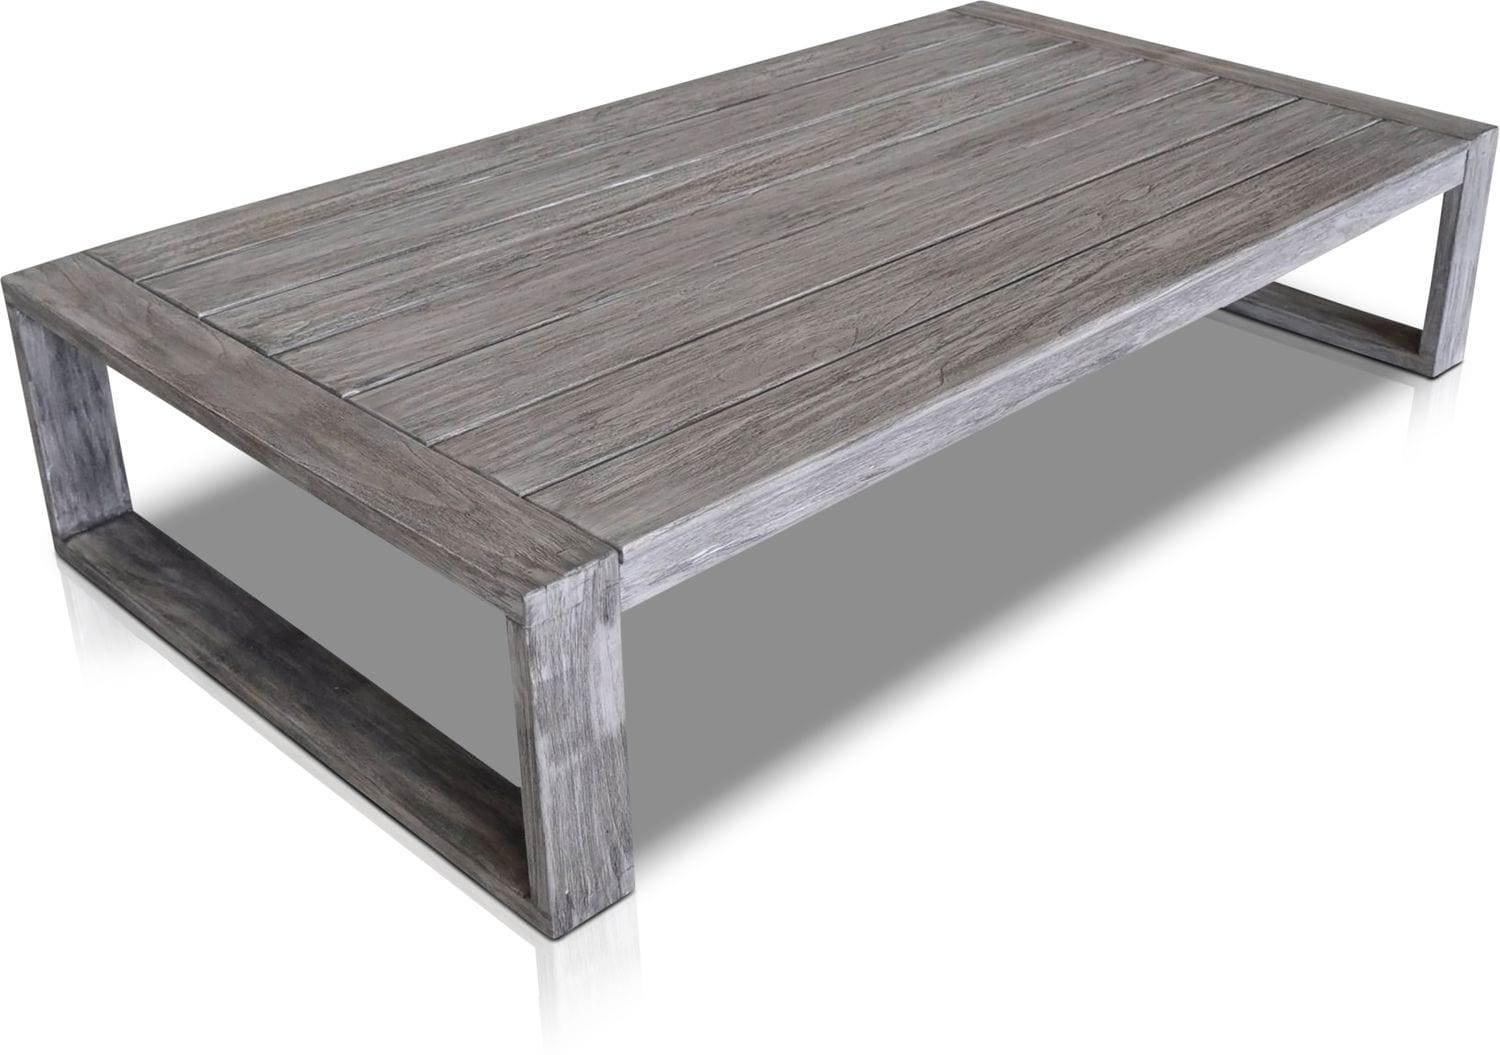 Outdoor Furniture - Beach Club Outdoor Coffee Table